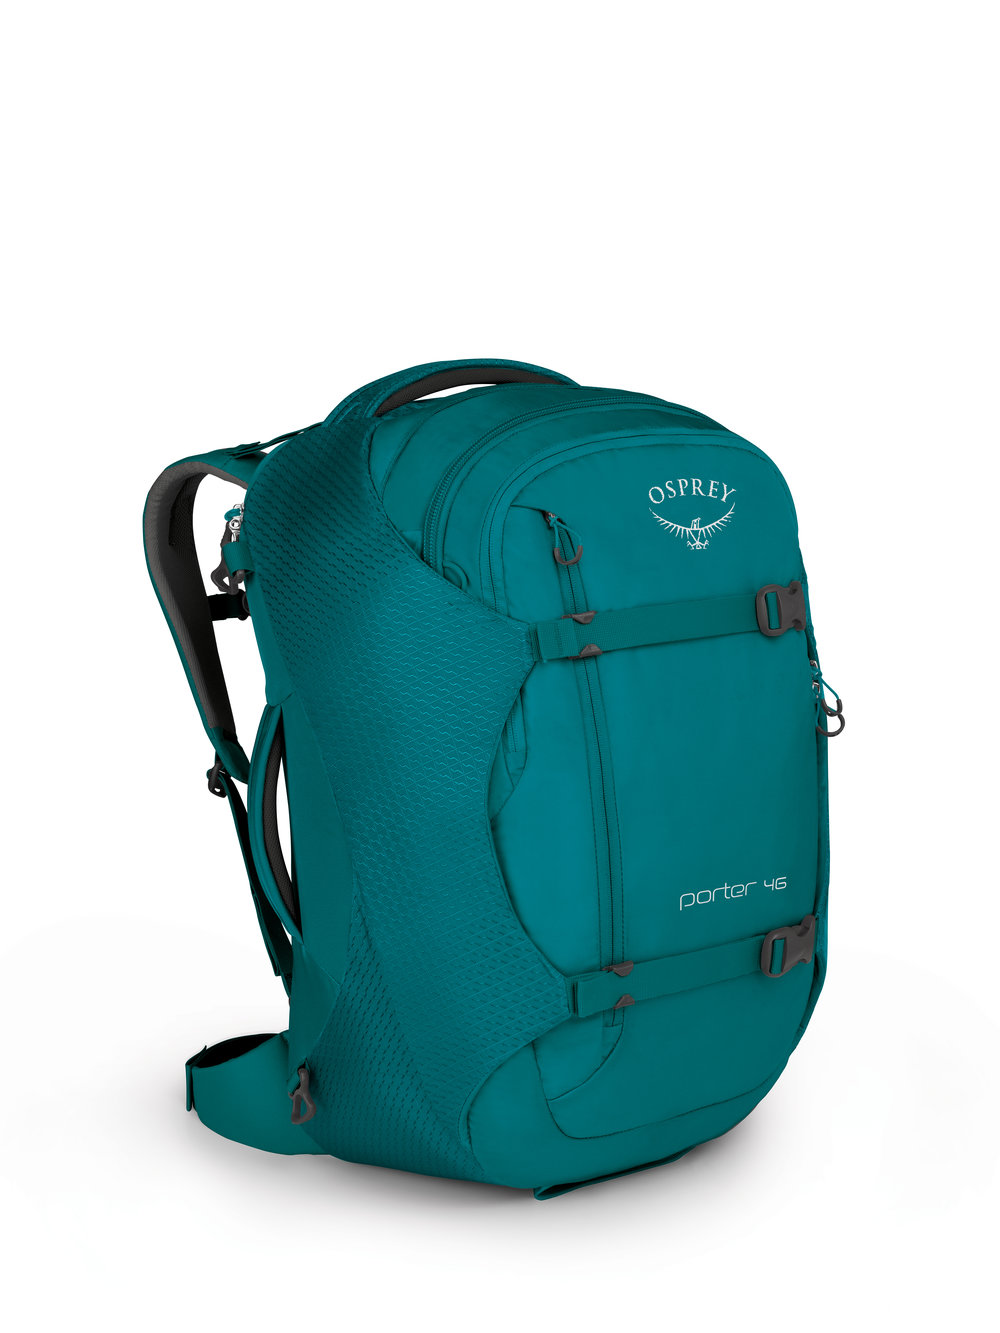 Rosie's Favorite Osprey bag, the Porter 46. Adventure to TB&C to check it out for yourself.